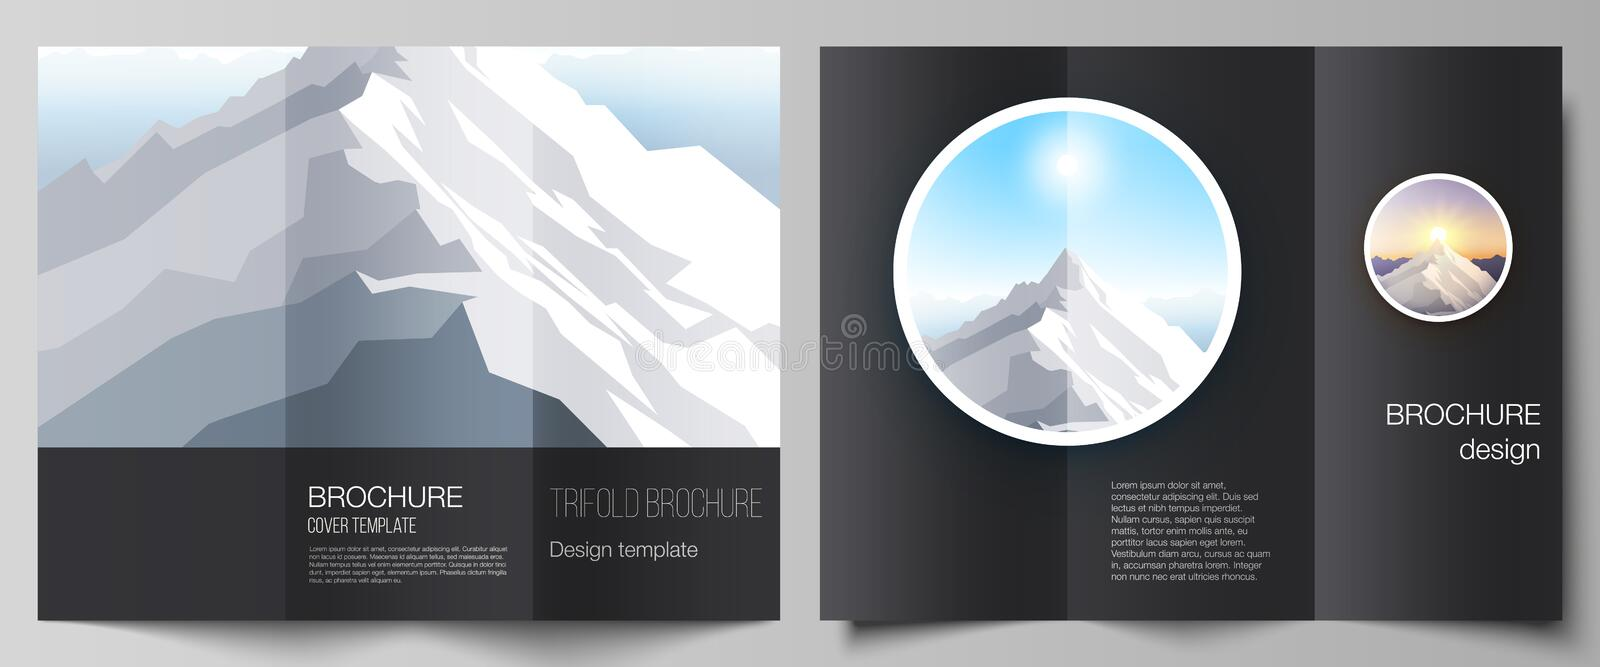 The minimal vector illustration layouts. Modern creative covers design templates for trifold brochure or flyer. Mountain. Illustration, outdoor adventure stock illustration